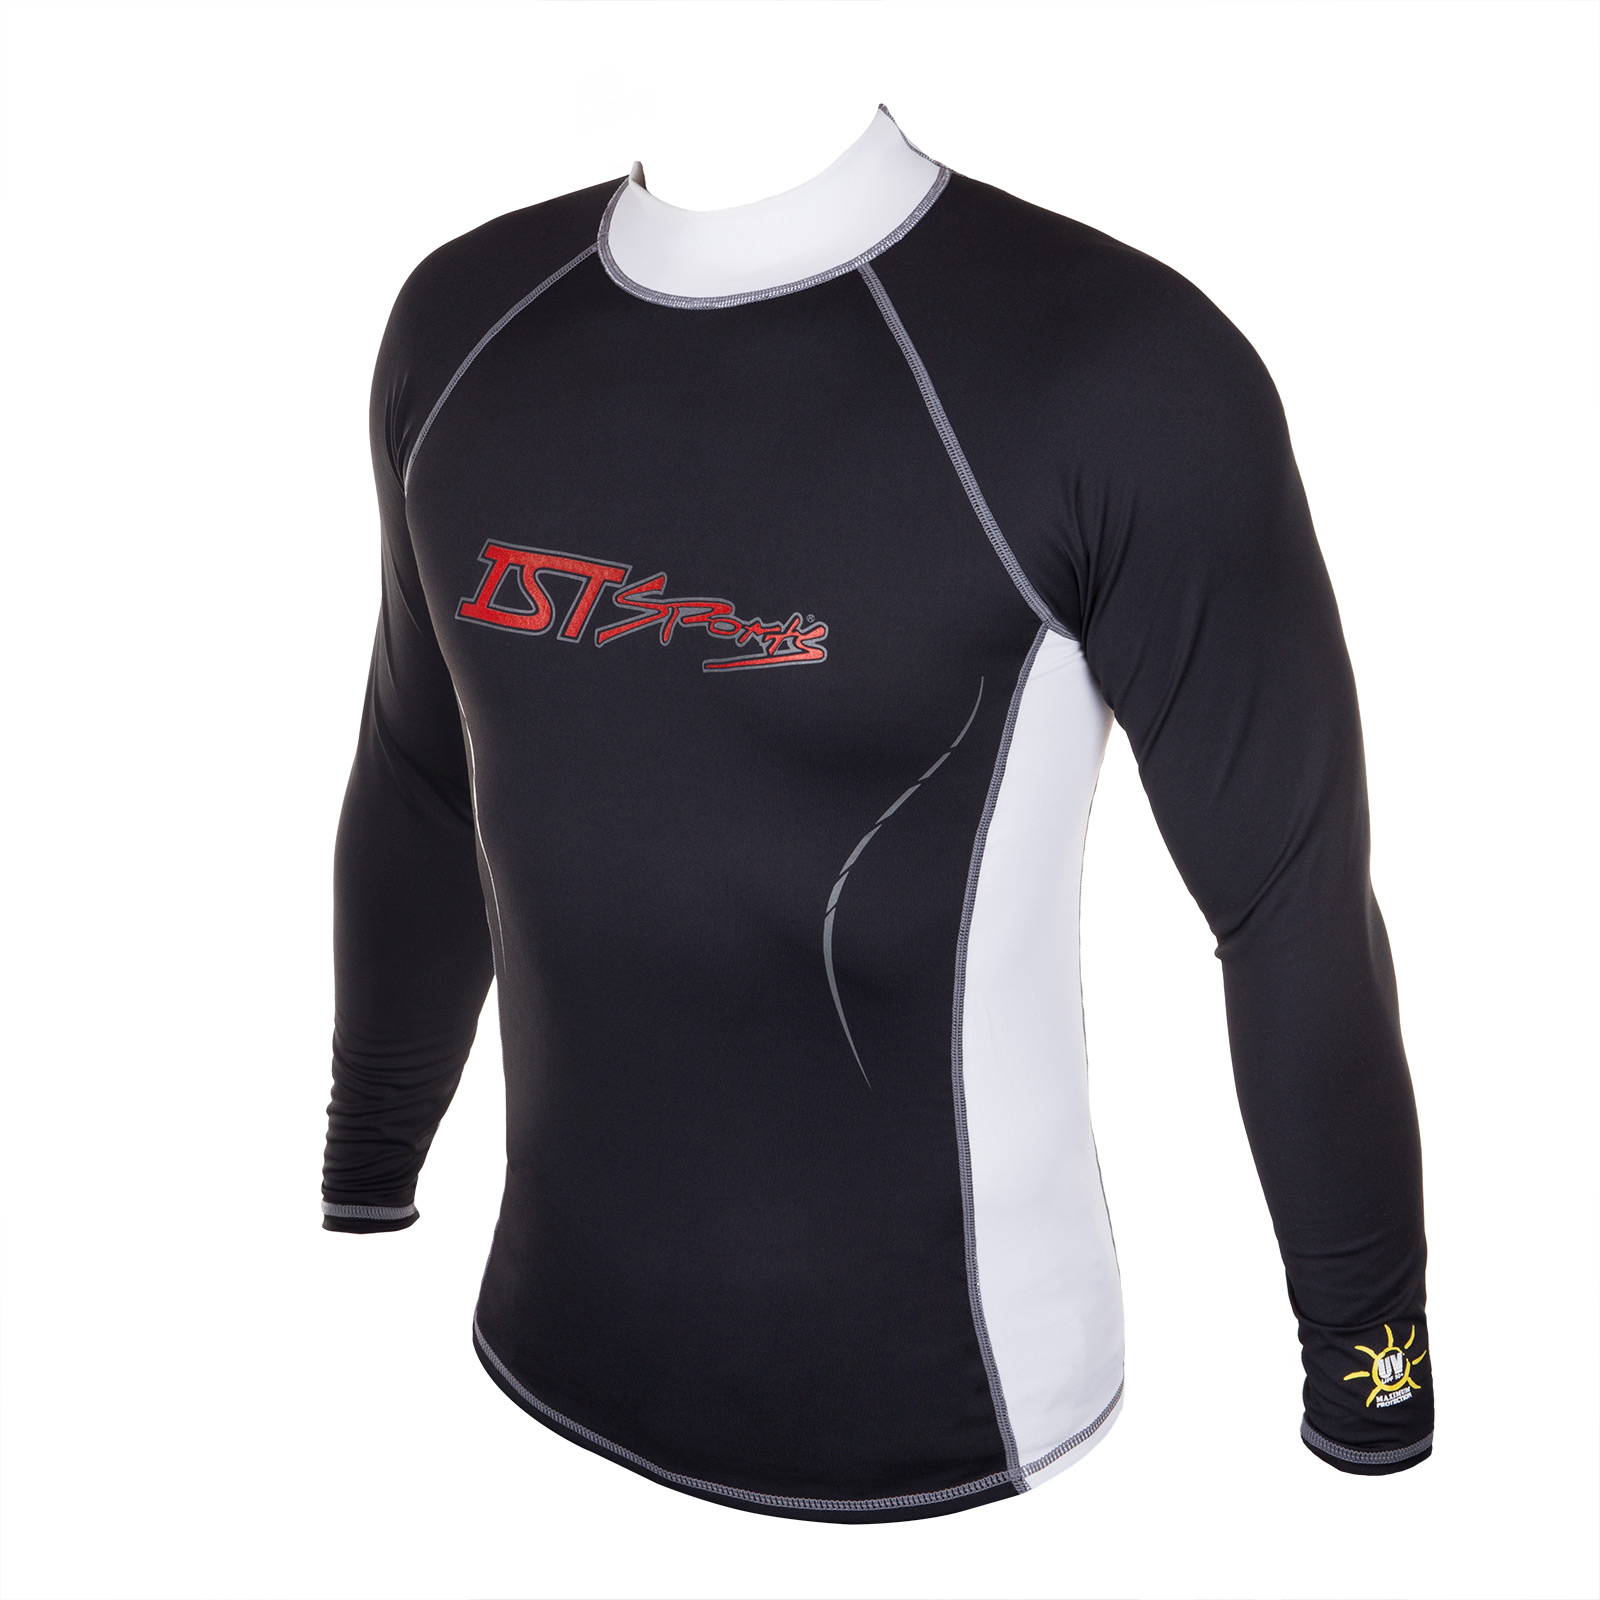 Unisex Long Sleeve Spandex Rash Guard